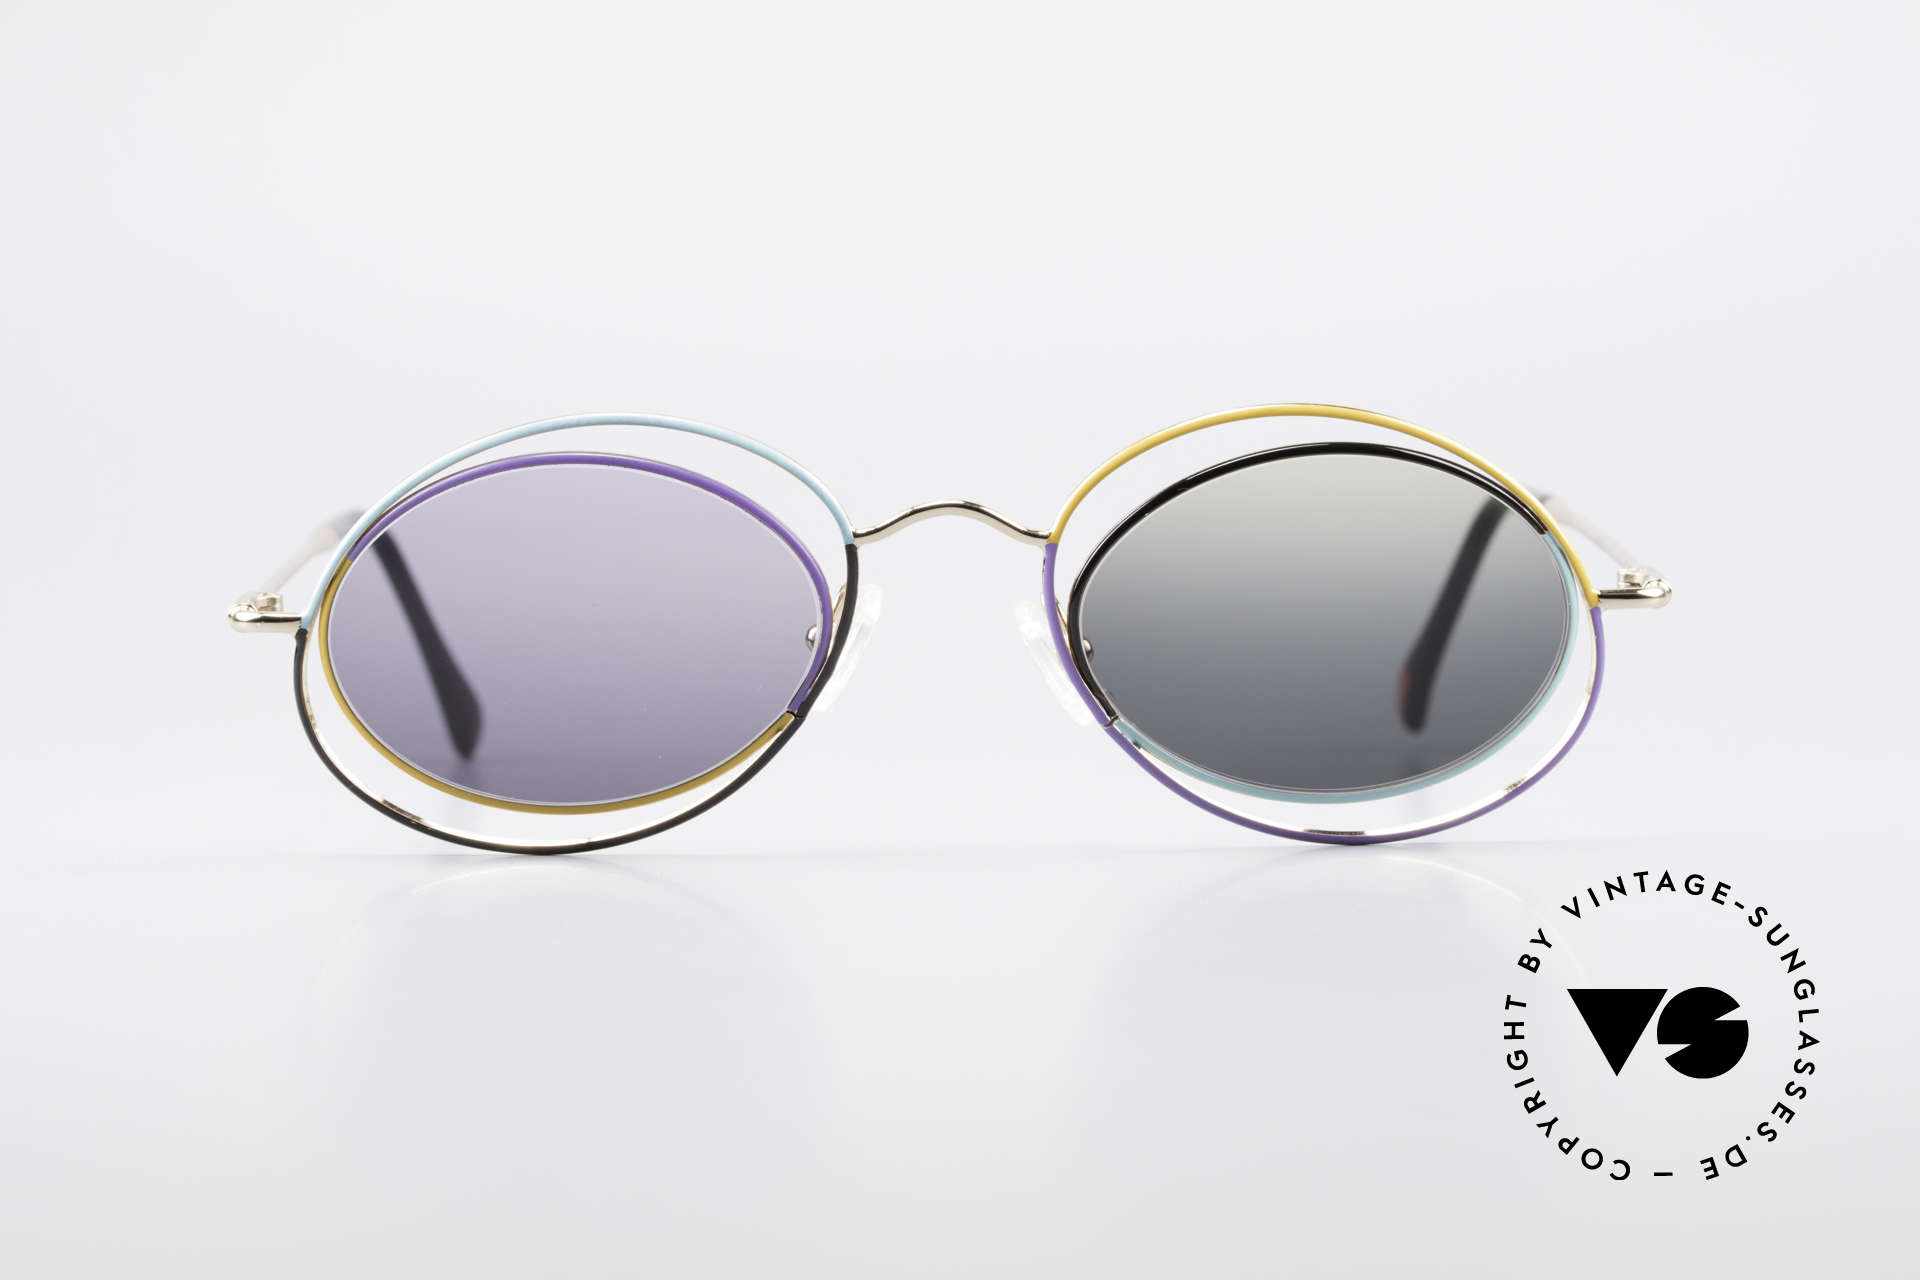 Casanova LC18 Vintage Art Sunglasses 80's, shades with different colored sun lenses; FANCY!, Made for Women